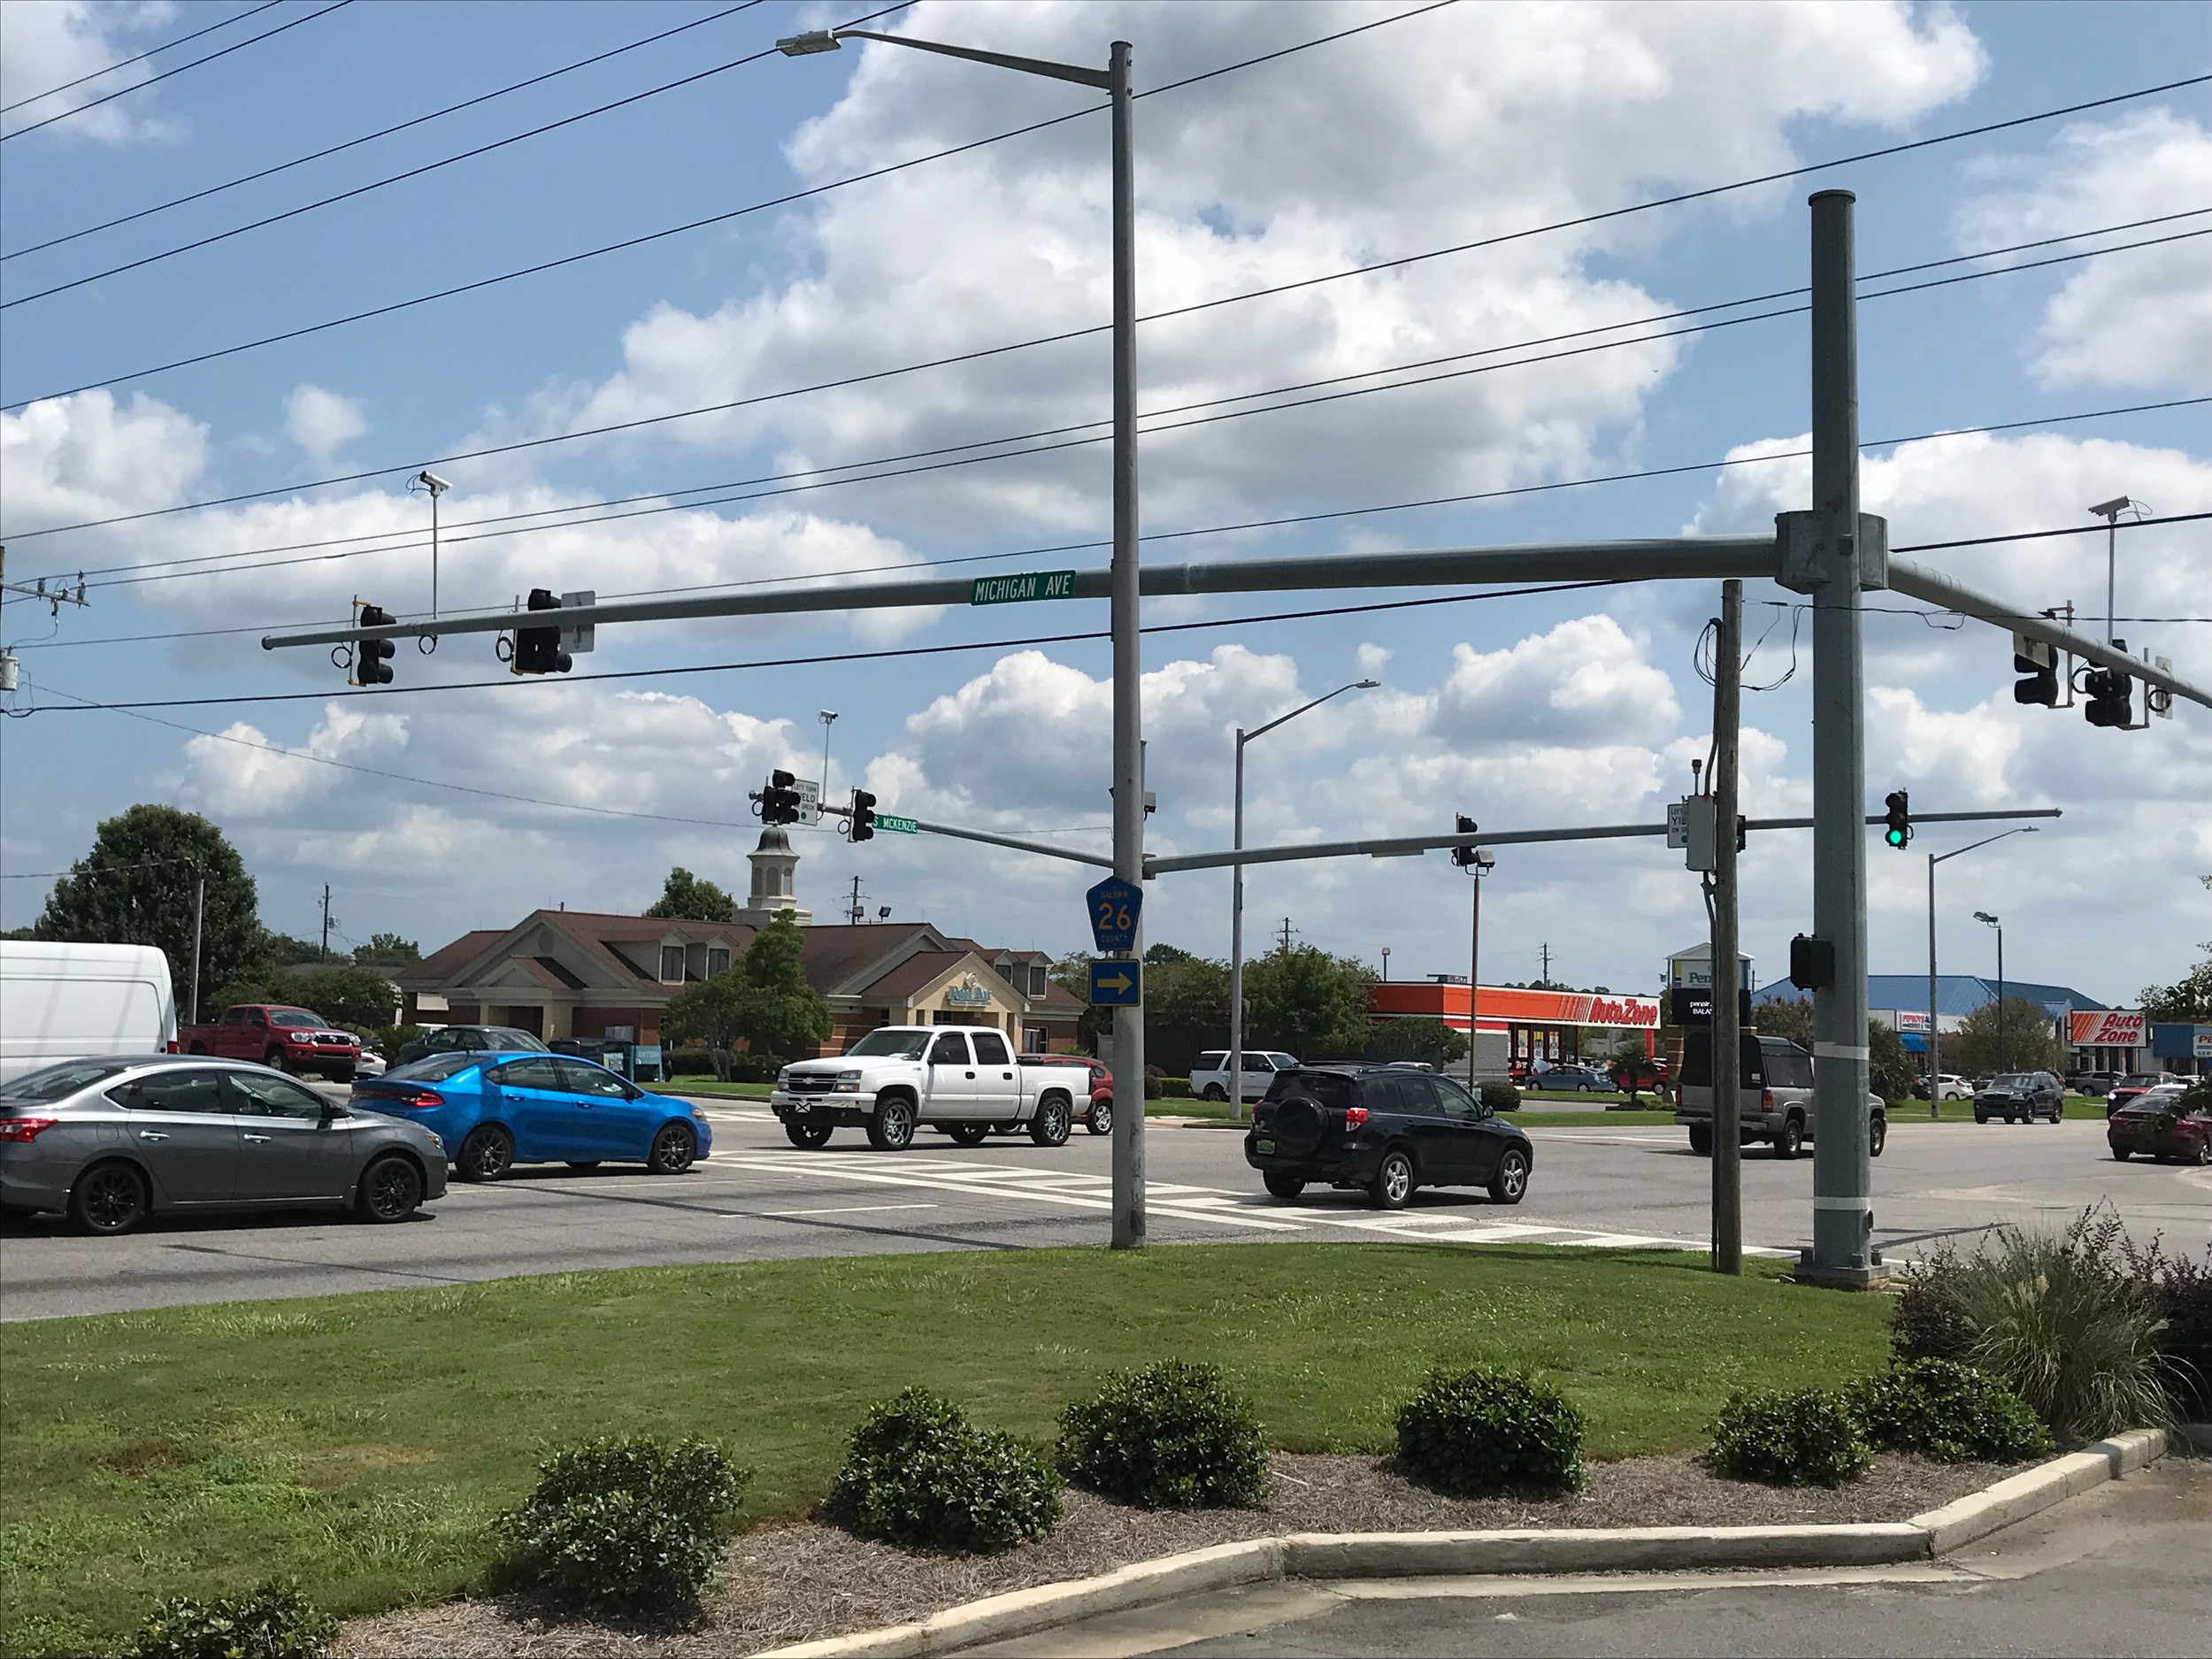 The intersection at Highway 59 and Michigan Avenue, one of the proposed intersections for the implementation of the new traffic signal preemption system from the Foley Fire Department.